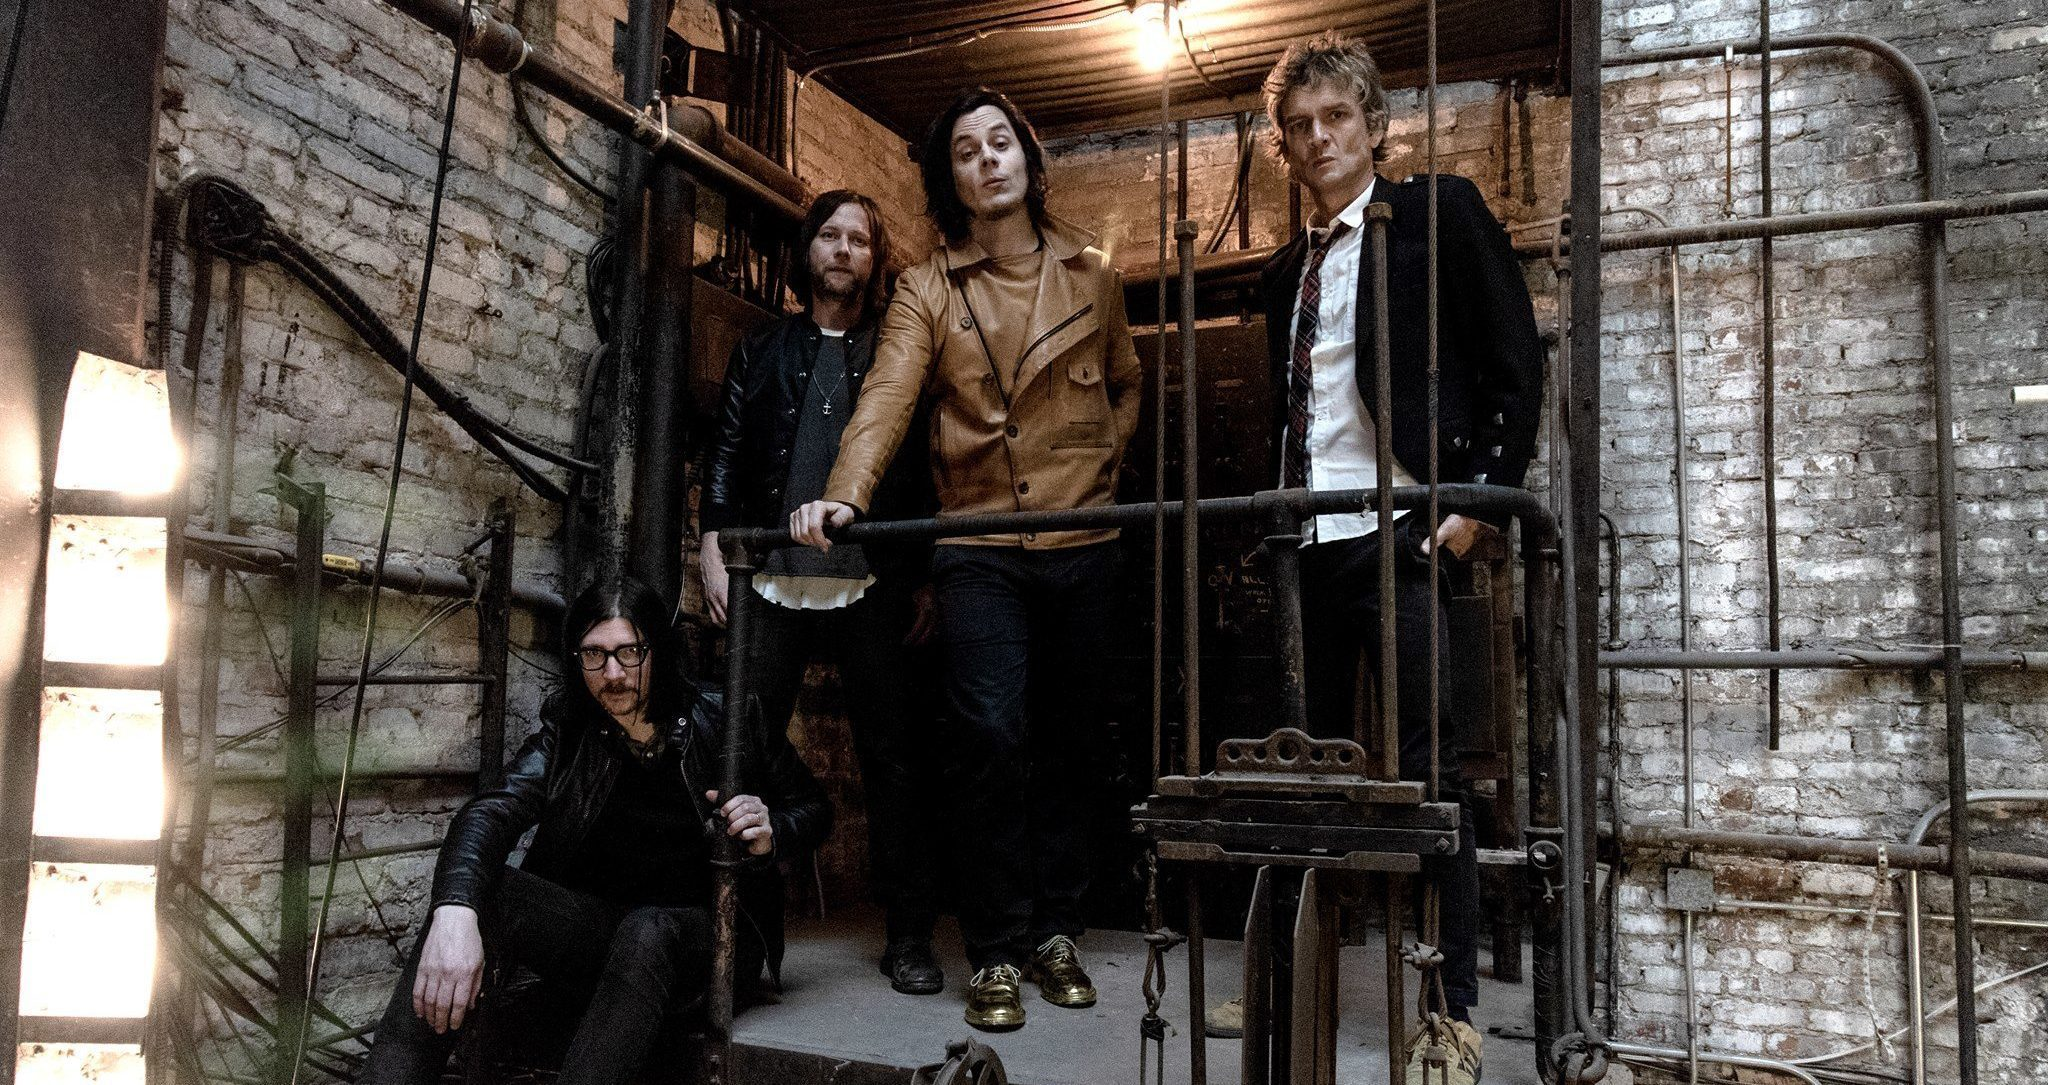 Help Us Stranger: Ponle play al nuevo disco de The Raconteurs